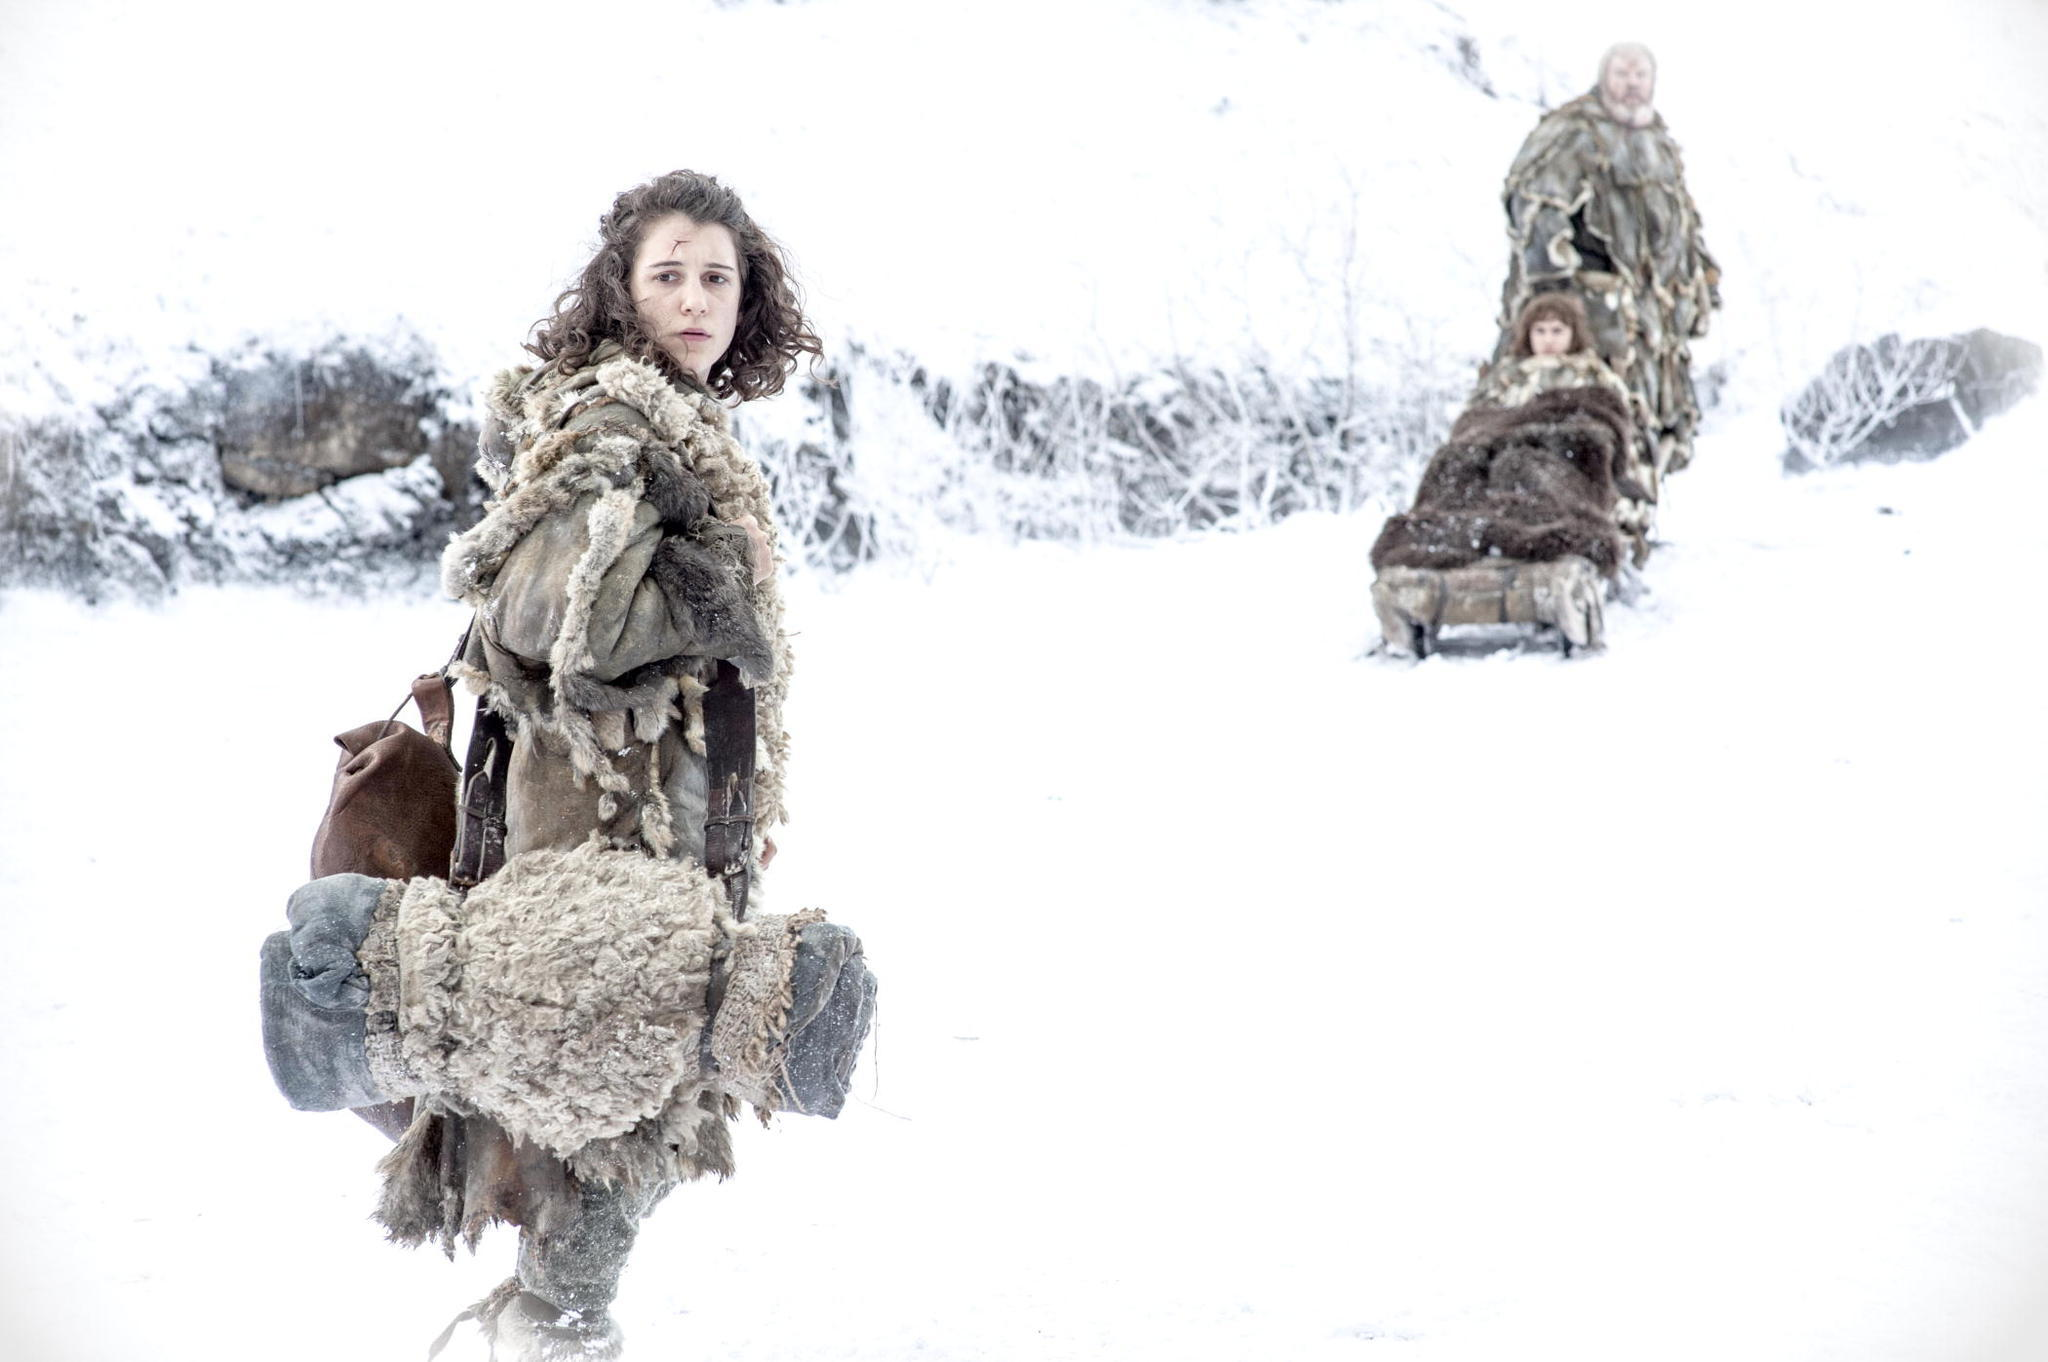 Game of Thrones Season 4 Finale Preview The Children - Bran making his way north www.scifiempire.net